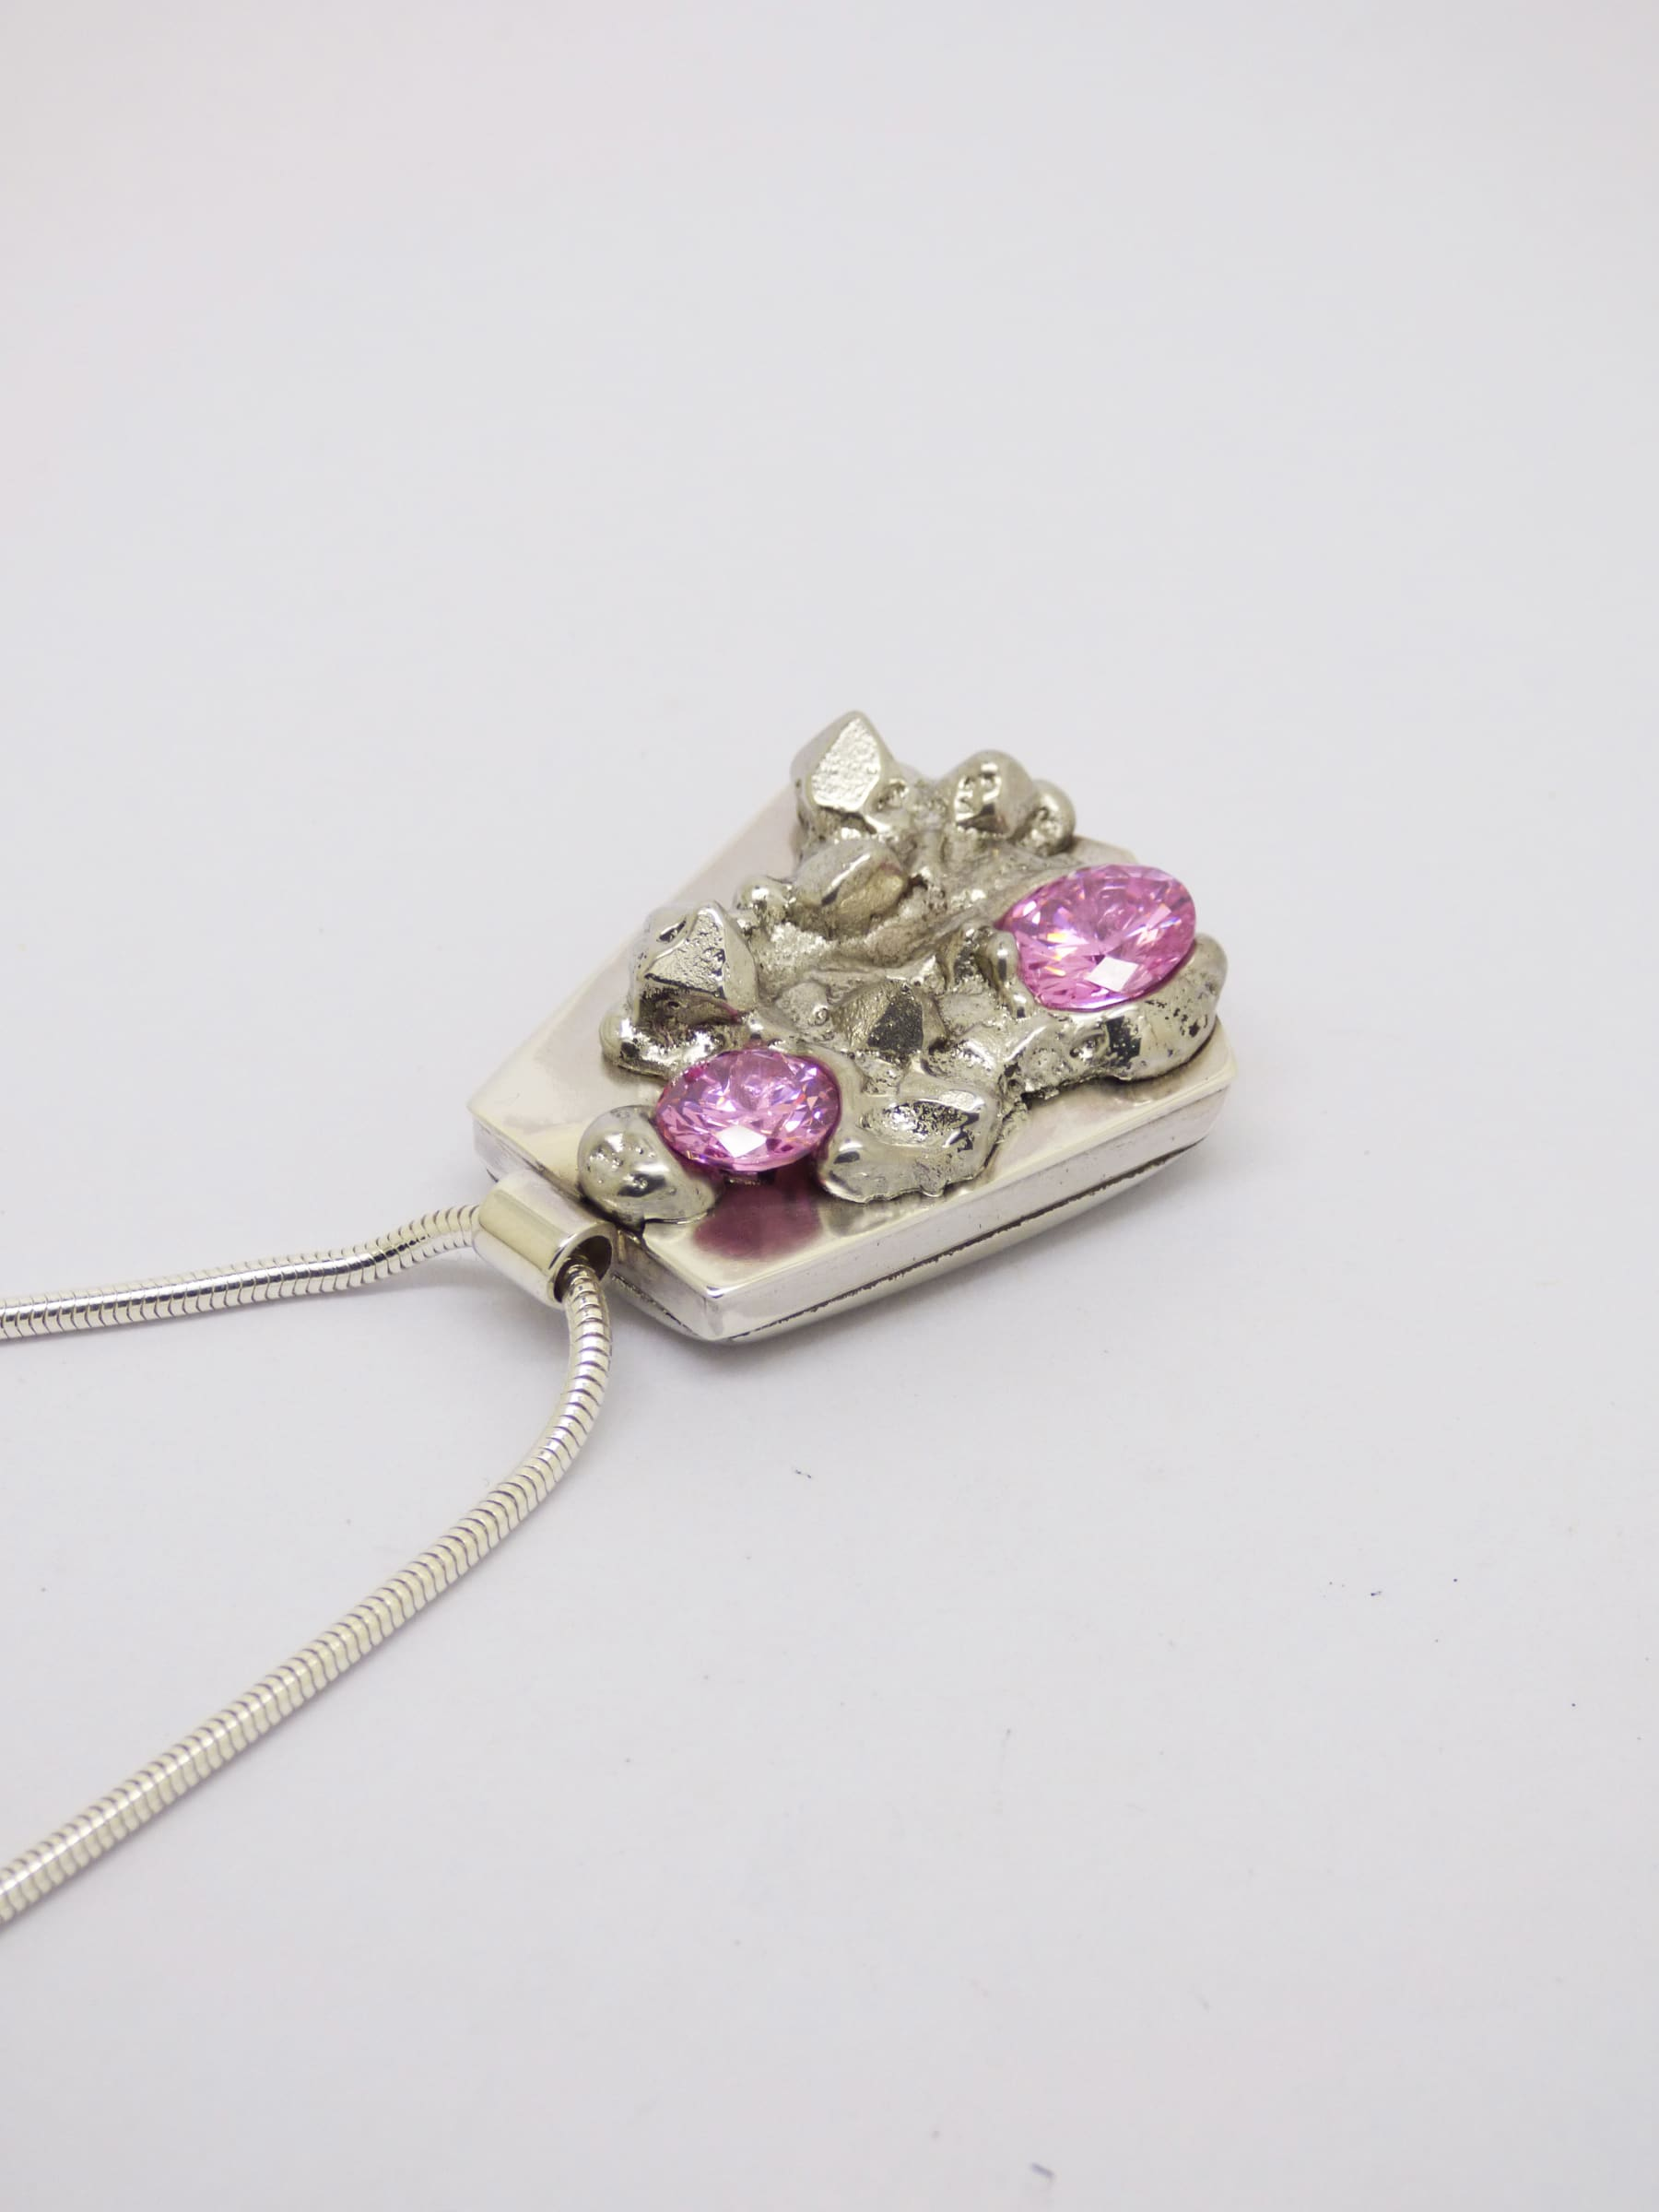 """<span class=""""link fancybox-details-link""""><a href=""""/artists/154-stacey-west/works/4899-stacey-west-found-treasures-pendant-large-2017/"""">View Detail Page</a></span><div class=""""artist""""><strong>Stacey West</strong></div> <div class=""""title""""><em>'Found Treasures' Pendant – large</em>, 2017</div> <div class=""""medium"""">Pewter and silver pendant on sterling silver chain with pink cubic zirconia. -Large (long chain) 20""""</div><div class=""""price"""">£155.00</div><div class=""""copyright_line"""">Copyright The Artist</div>"""